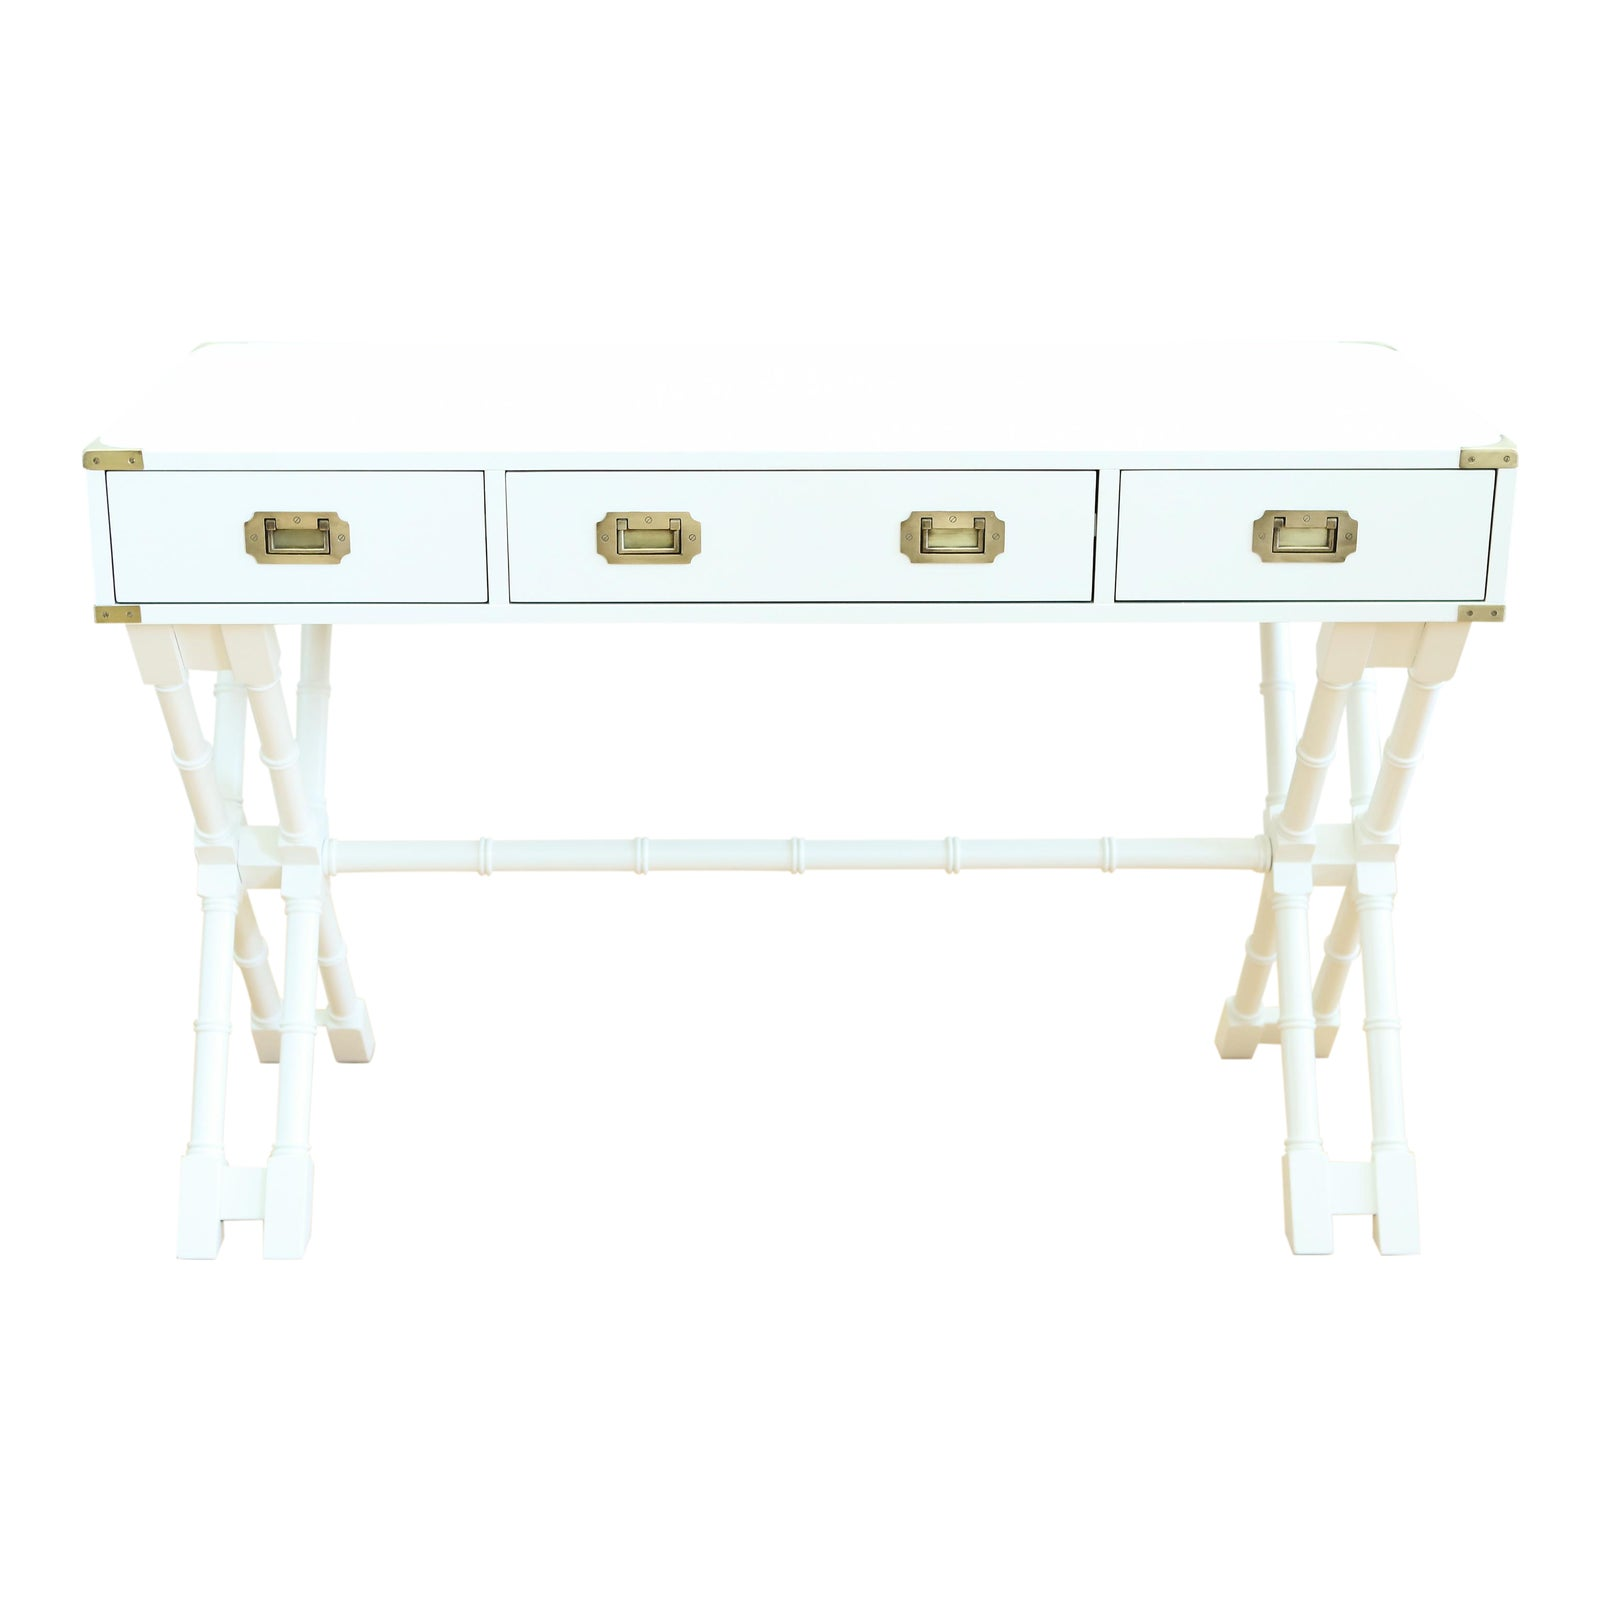 lacquer gold campaign lattice away for white macgda modern leaf worlds casual base with com decor cordelia desk target